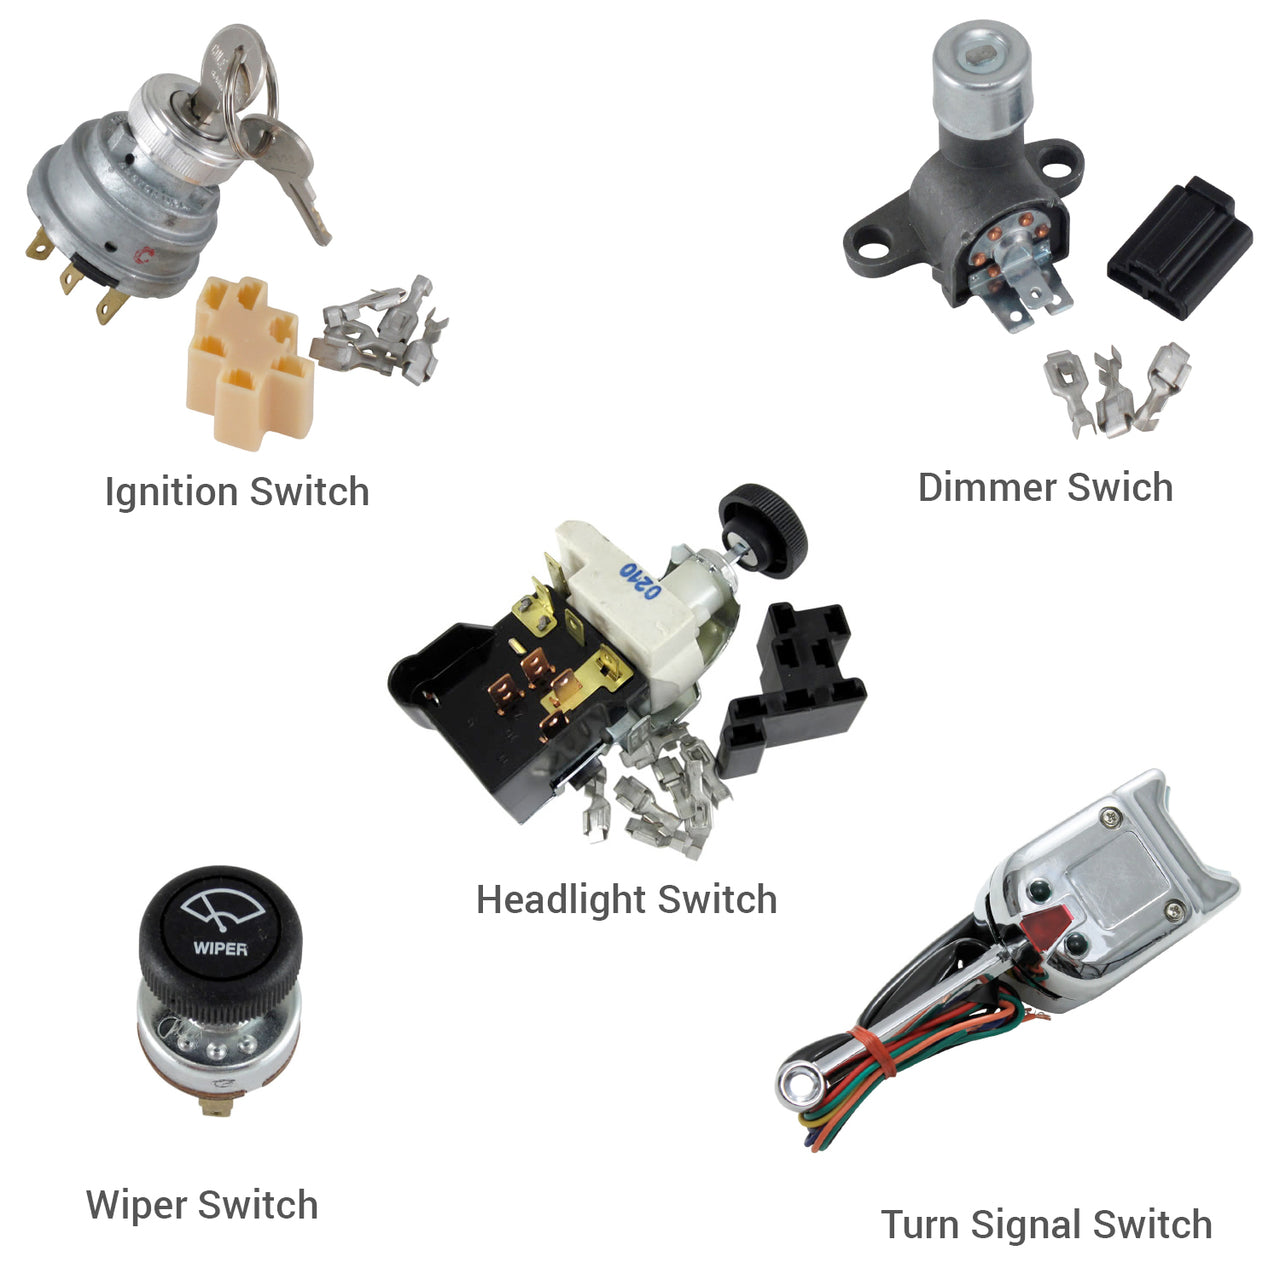 5-Switch Kit Headlight, Dimmer, Turn signal, Ignition and Wiper Switch